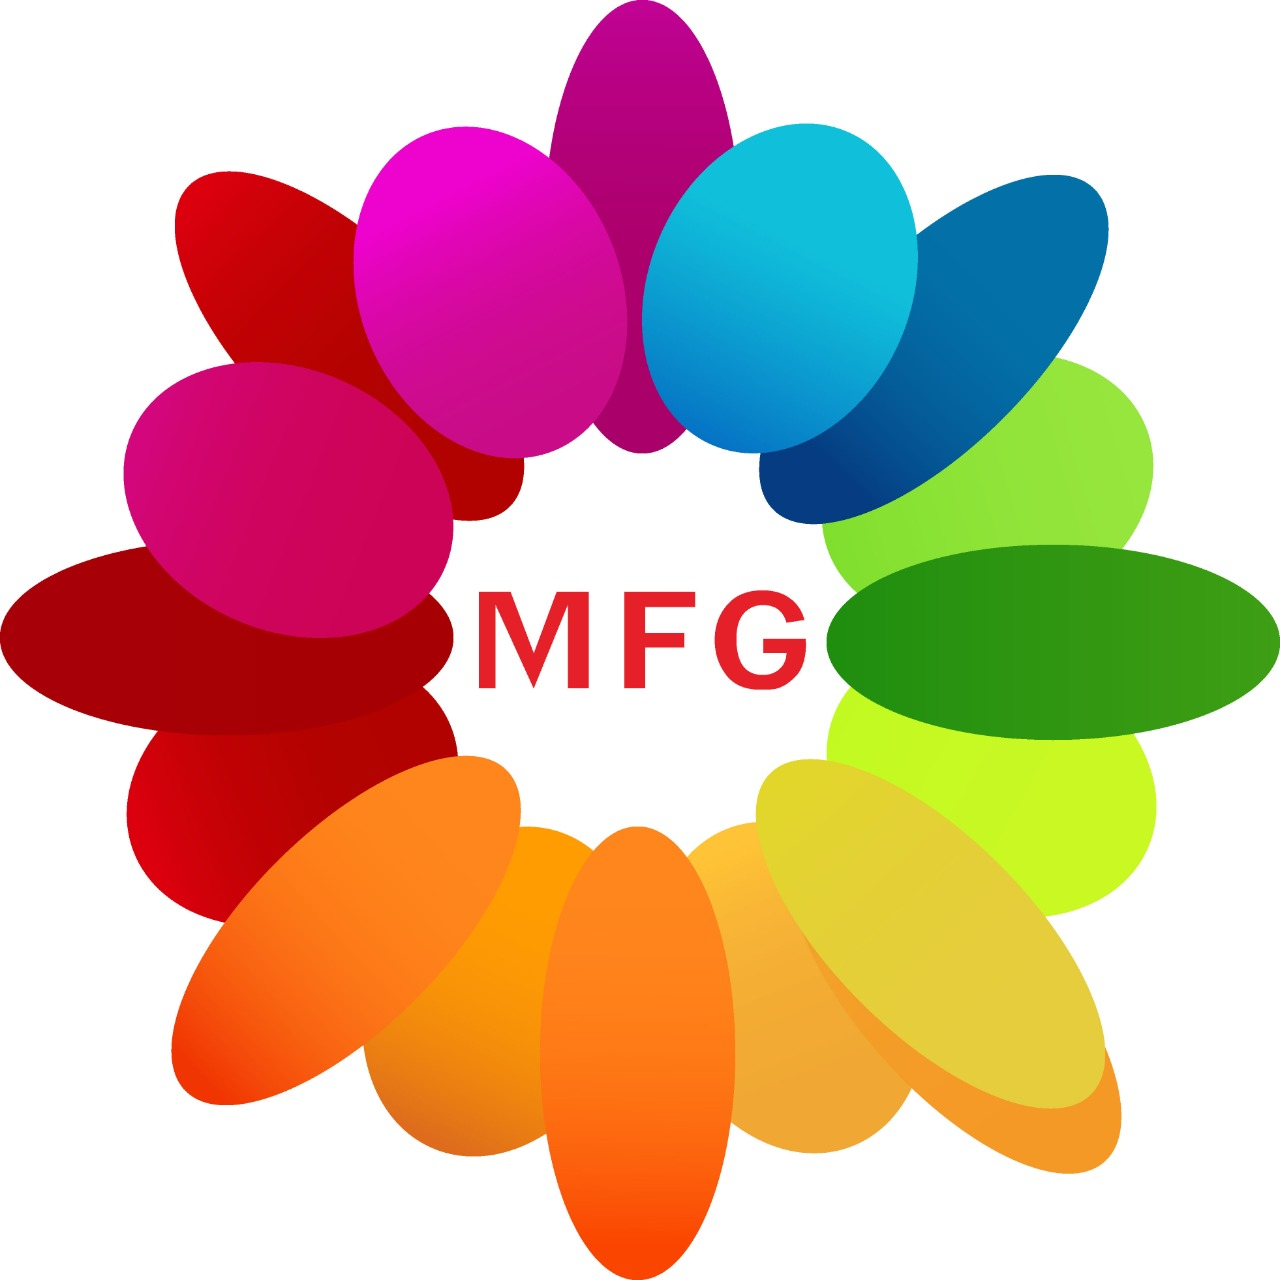 1 kg choco stick cake with bottle of red wine